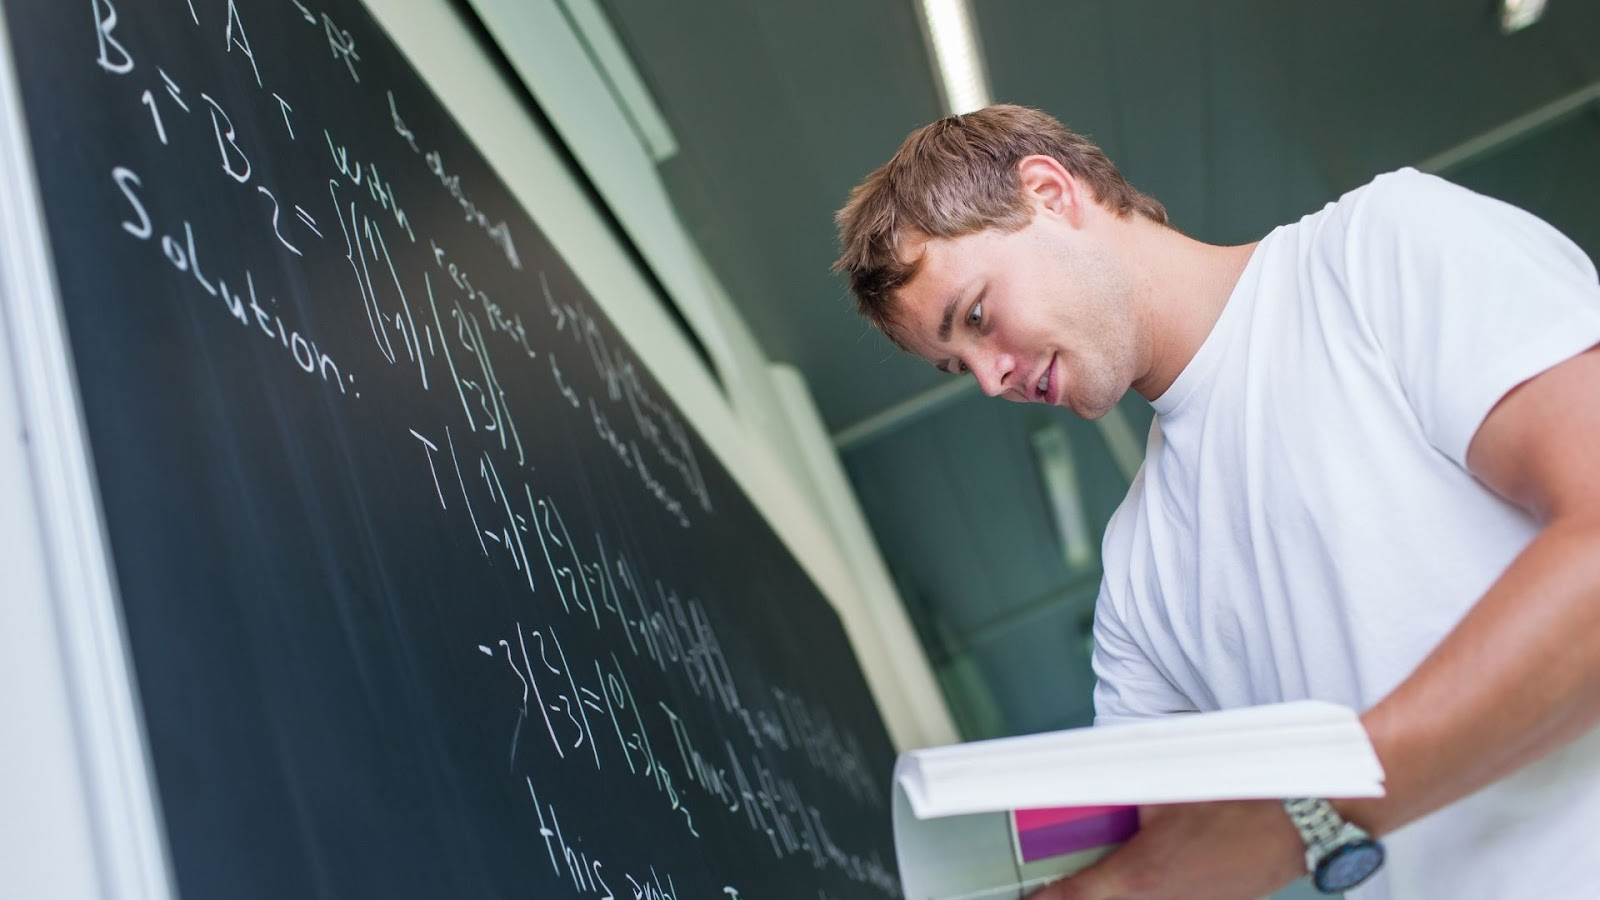 male student solving a math equation